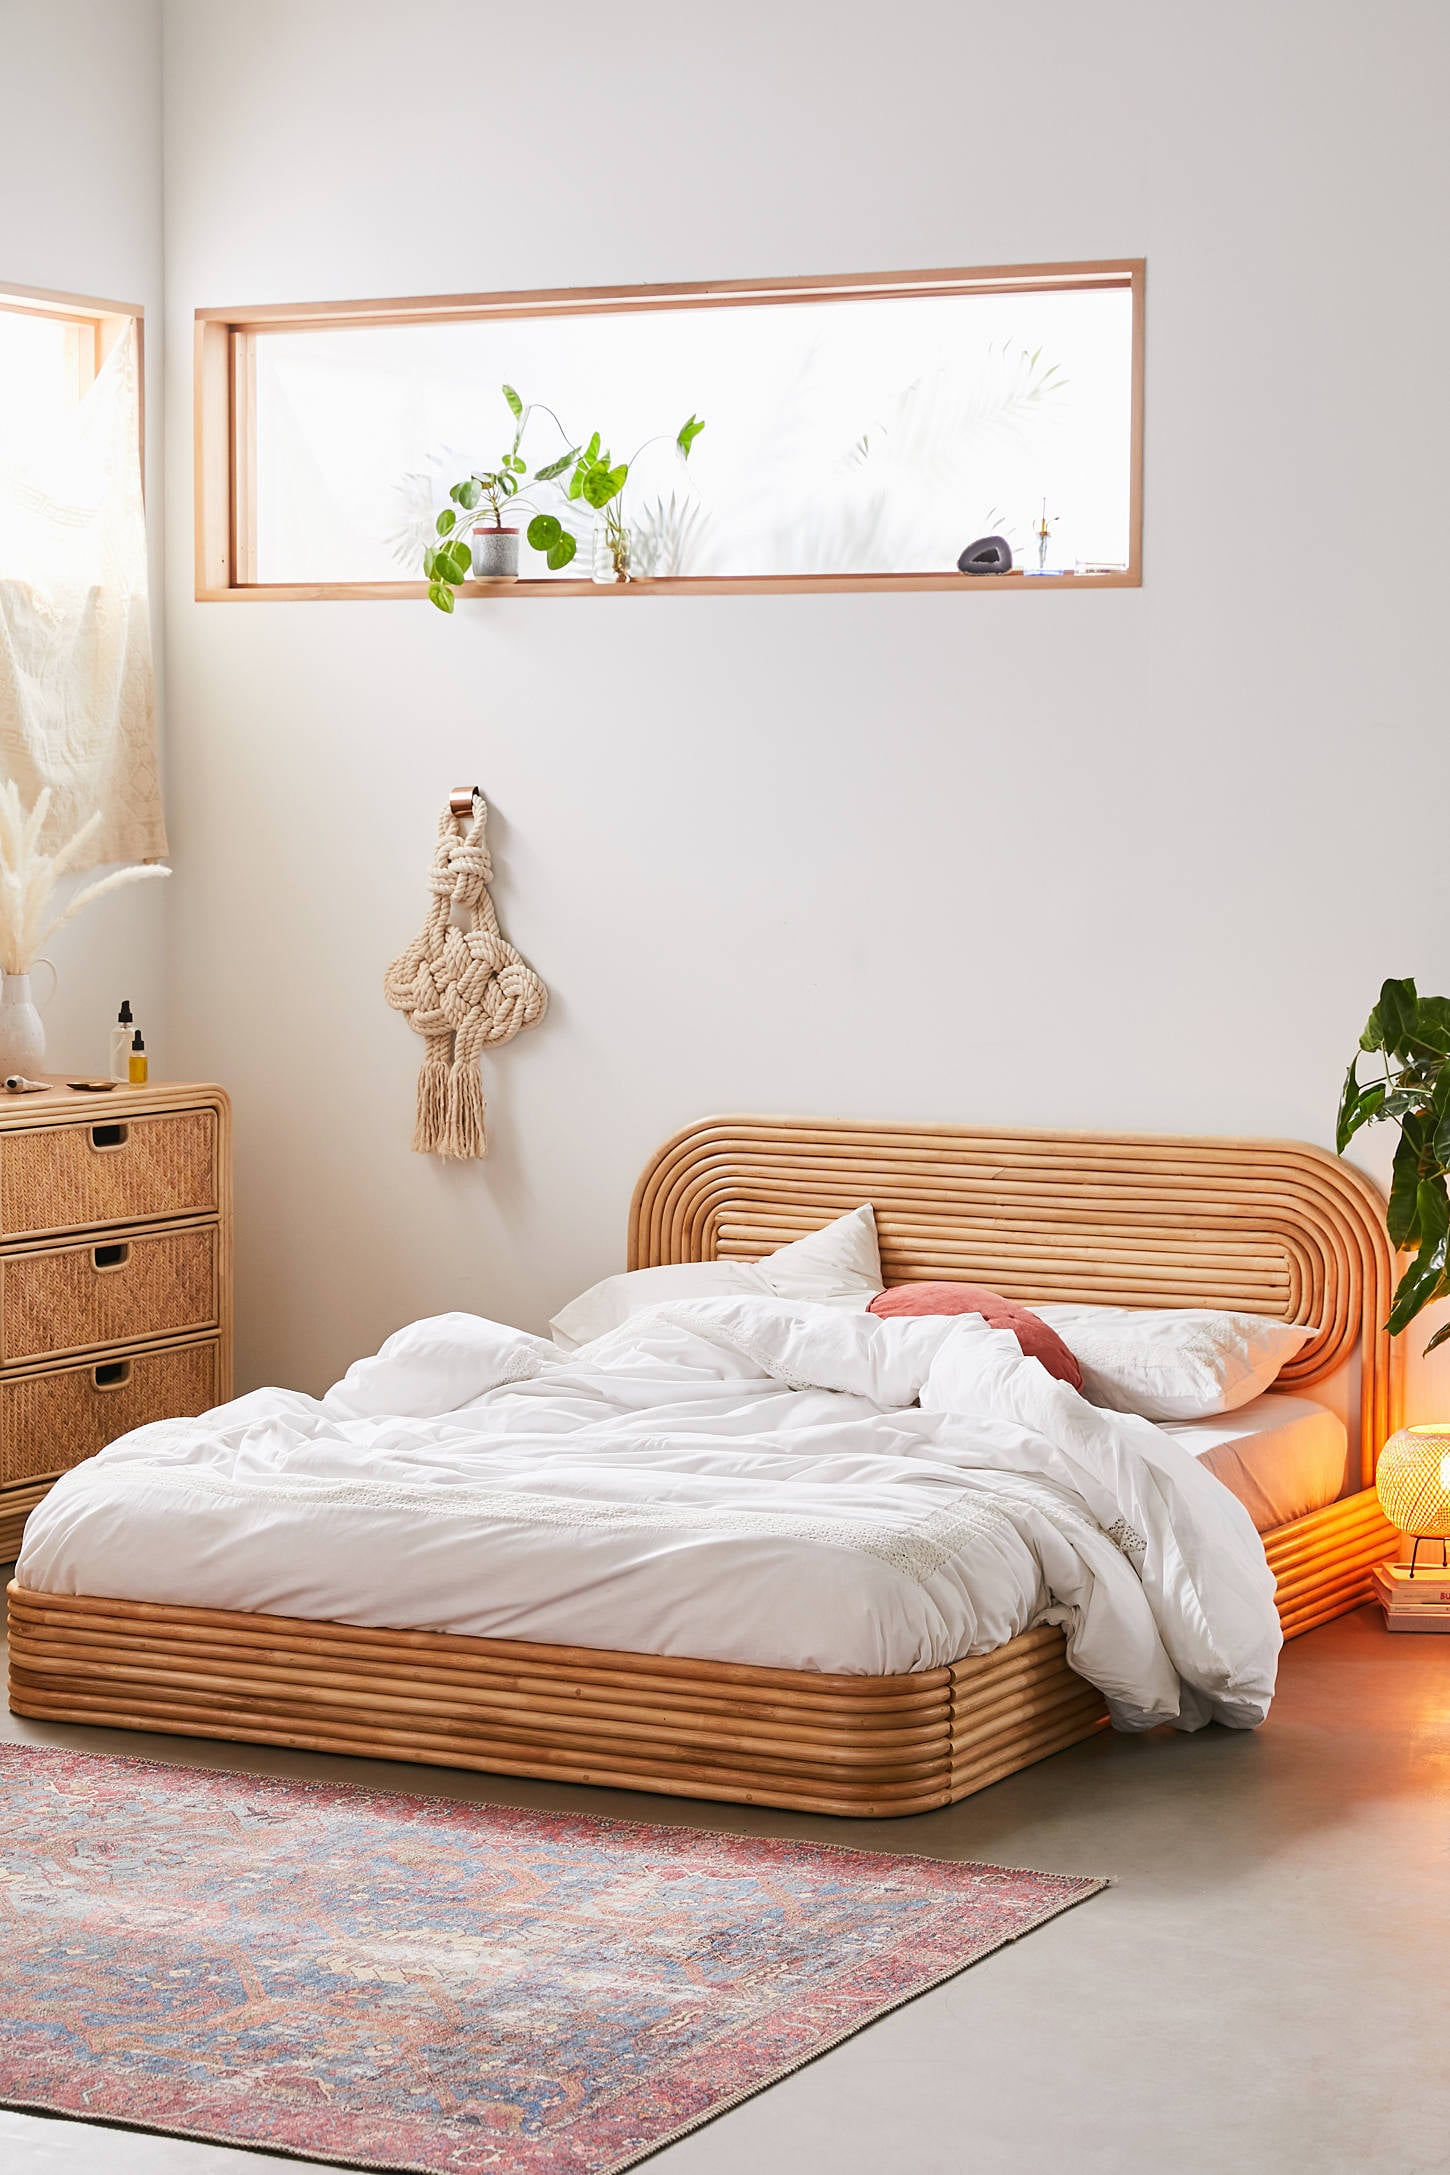 Ria Rattan Bed 17 Bedroom Furniture Pieces That Are Straight Up Dreamy Starting At Just 90 Popsugar Home Photo 8